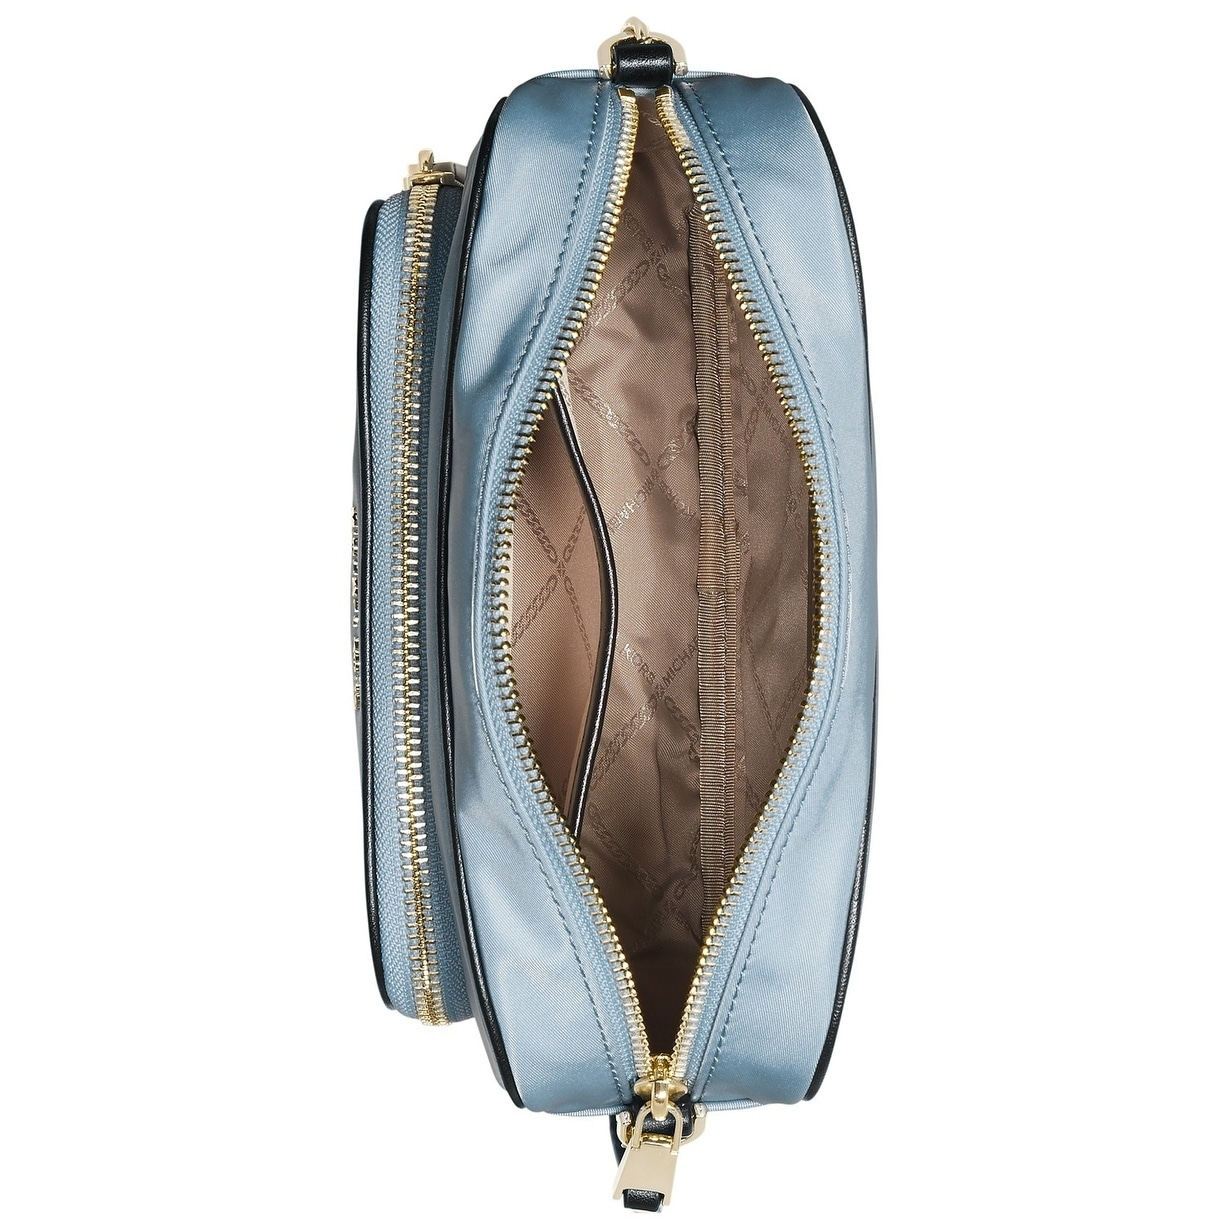 f138bdb6865b Shop MICHAEL Michael Kors Leila Nylon Camera Bag Pale Blue/Gold - Free  Shipping Today - Overstock - 28021704